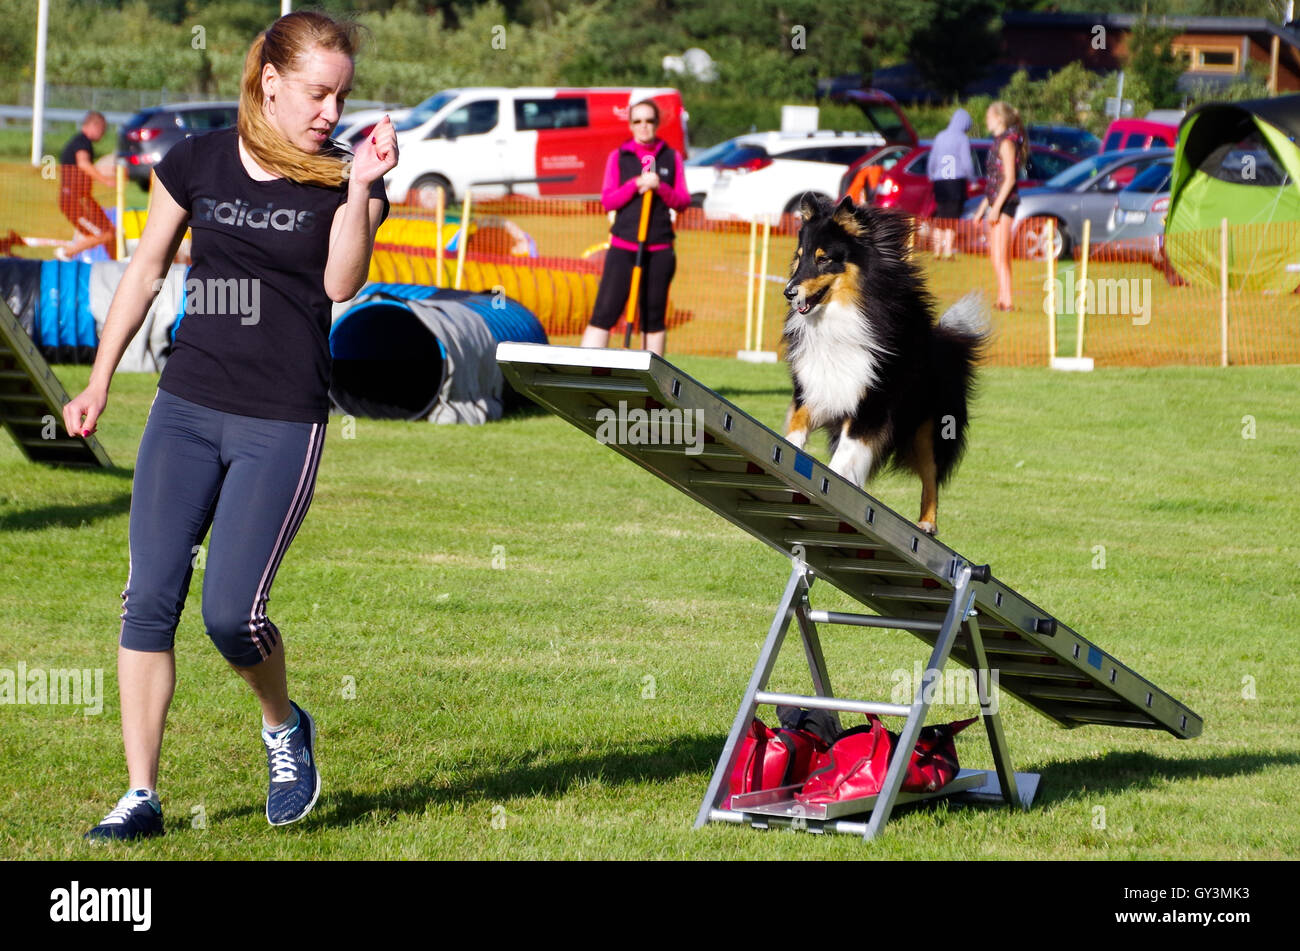 A young woman competing in dog agility competitions with her sheltie on the swing - Stock Image